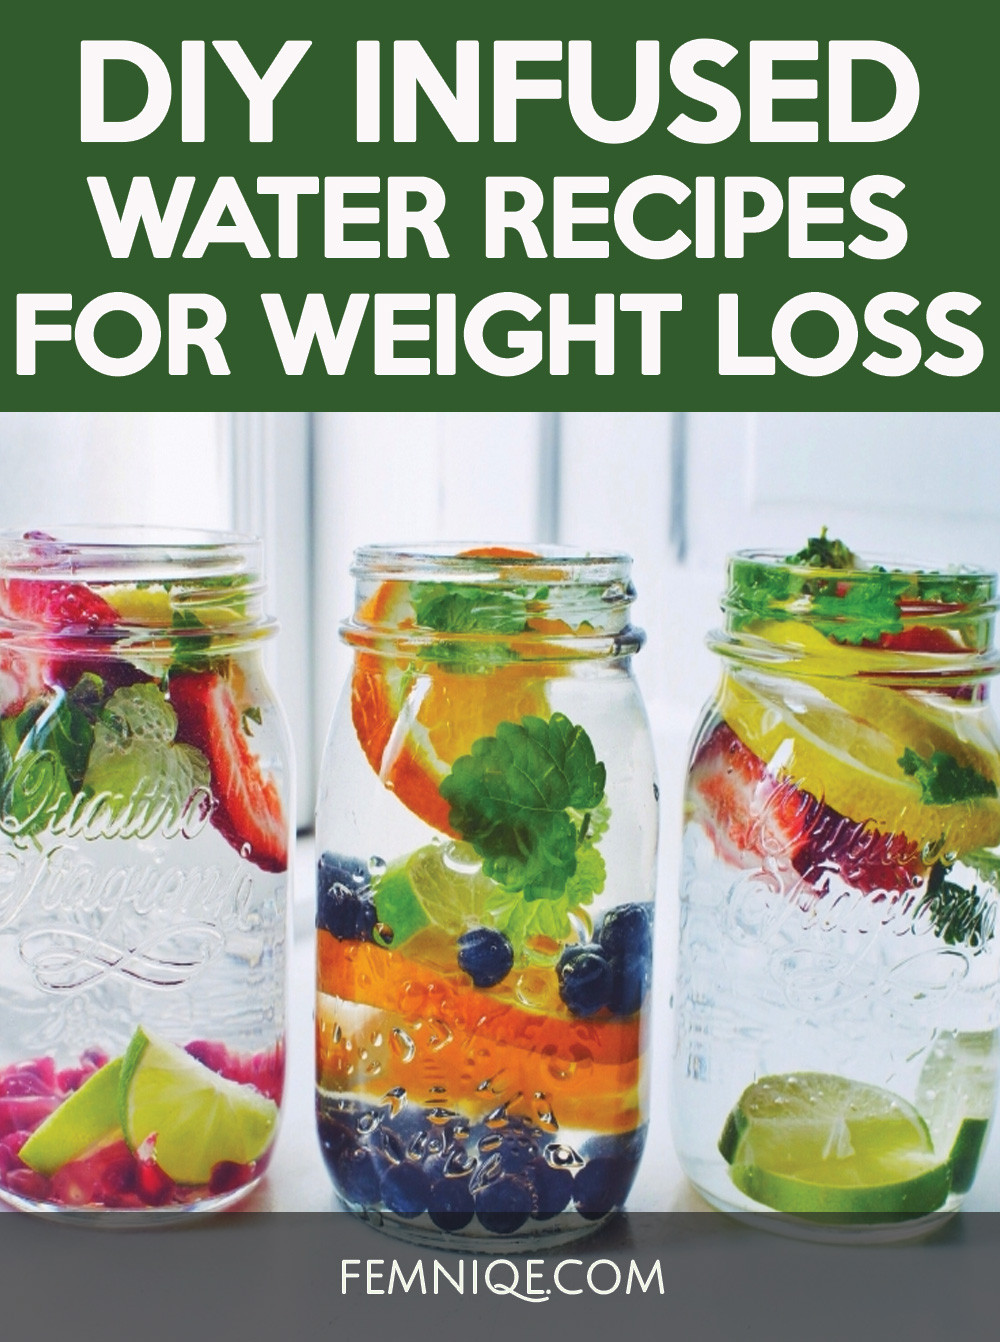 Water Infusion Recipes For Weight Loss  DIY Fruit Infused Water Recipes For Weight Loss Femniqe